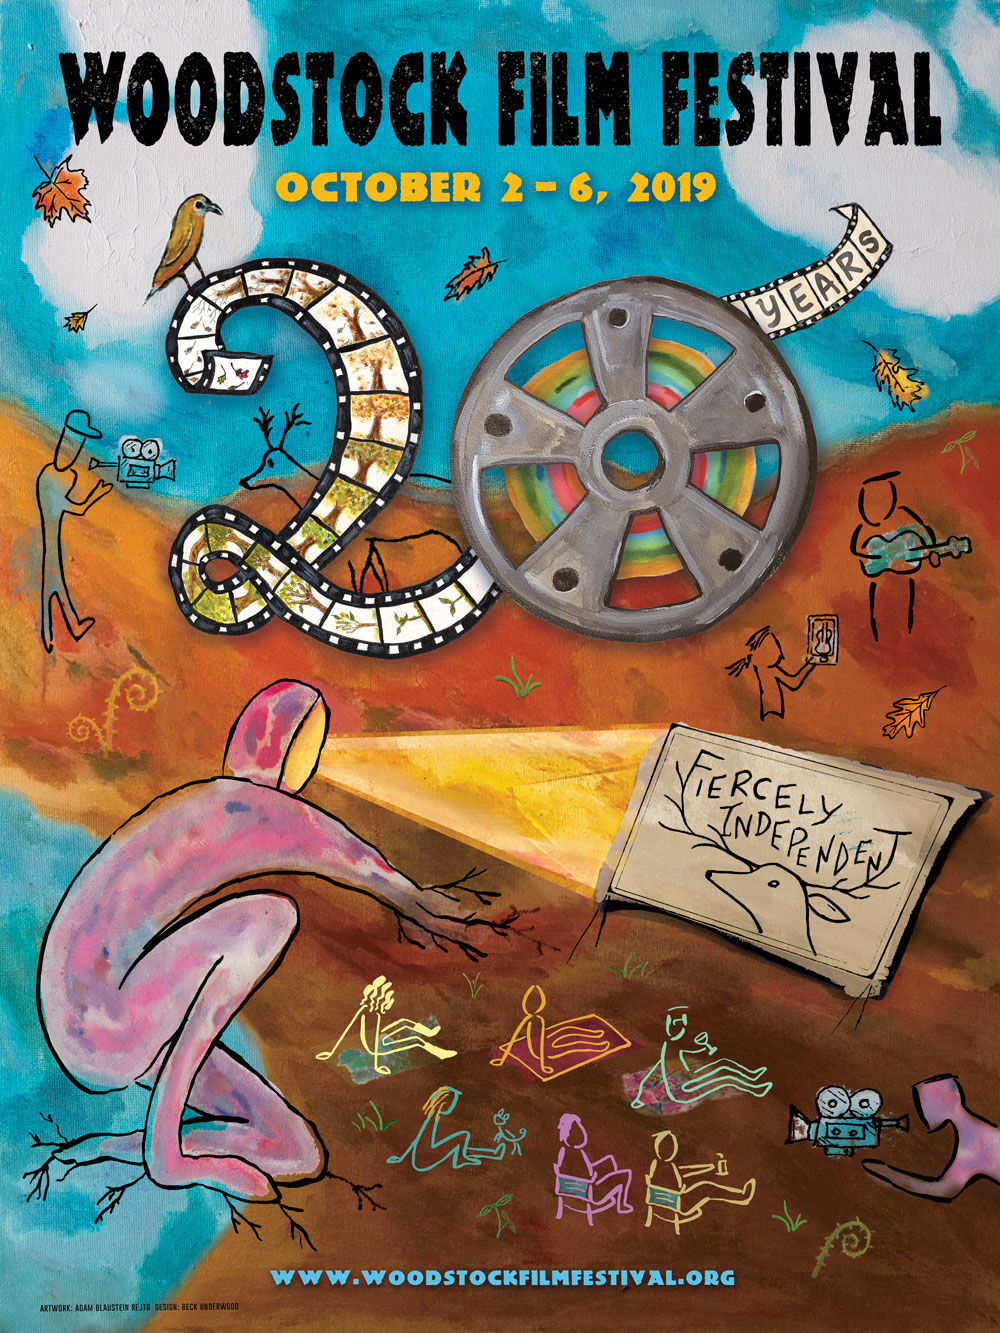 20th Anniversary Poster of Woodstock Film Festival; Artwork by myself and Graphic design by Beck Underwood